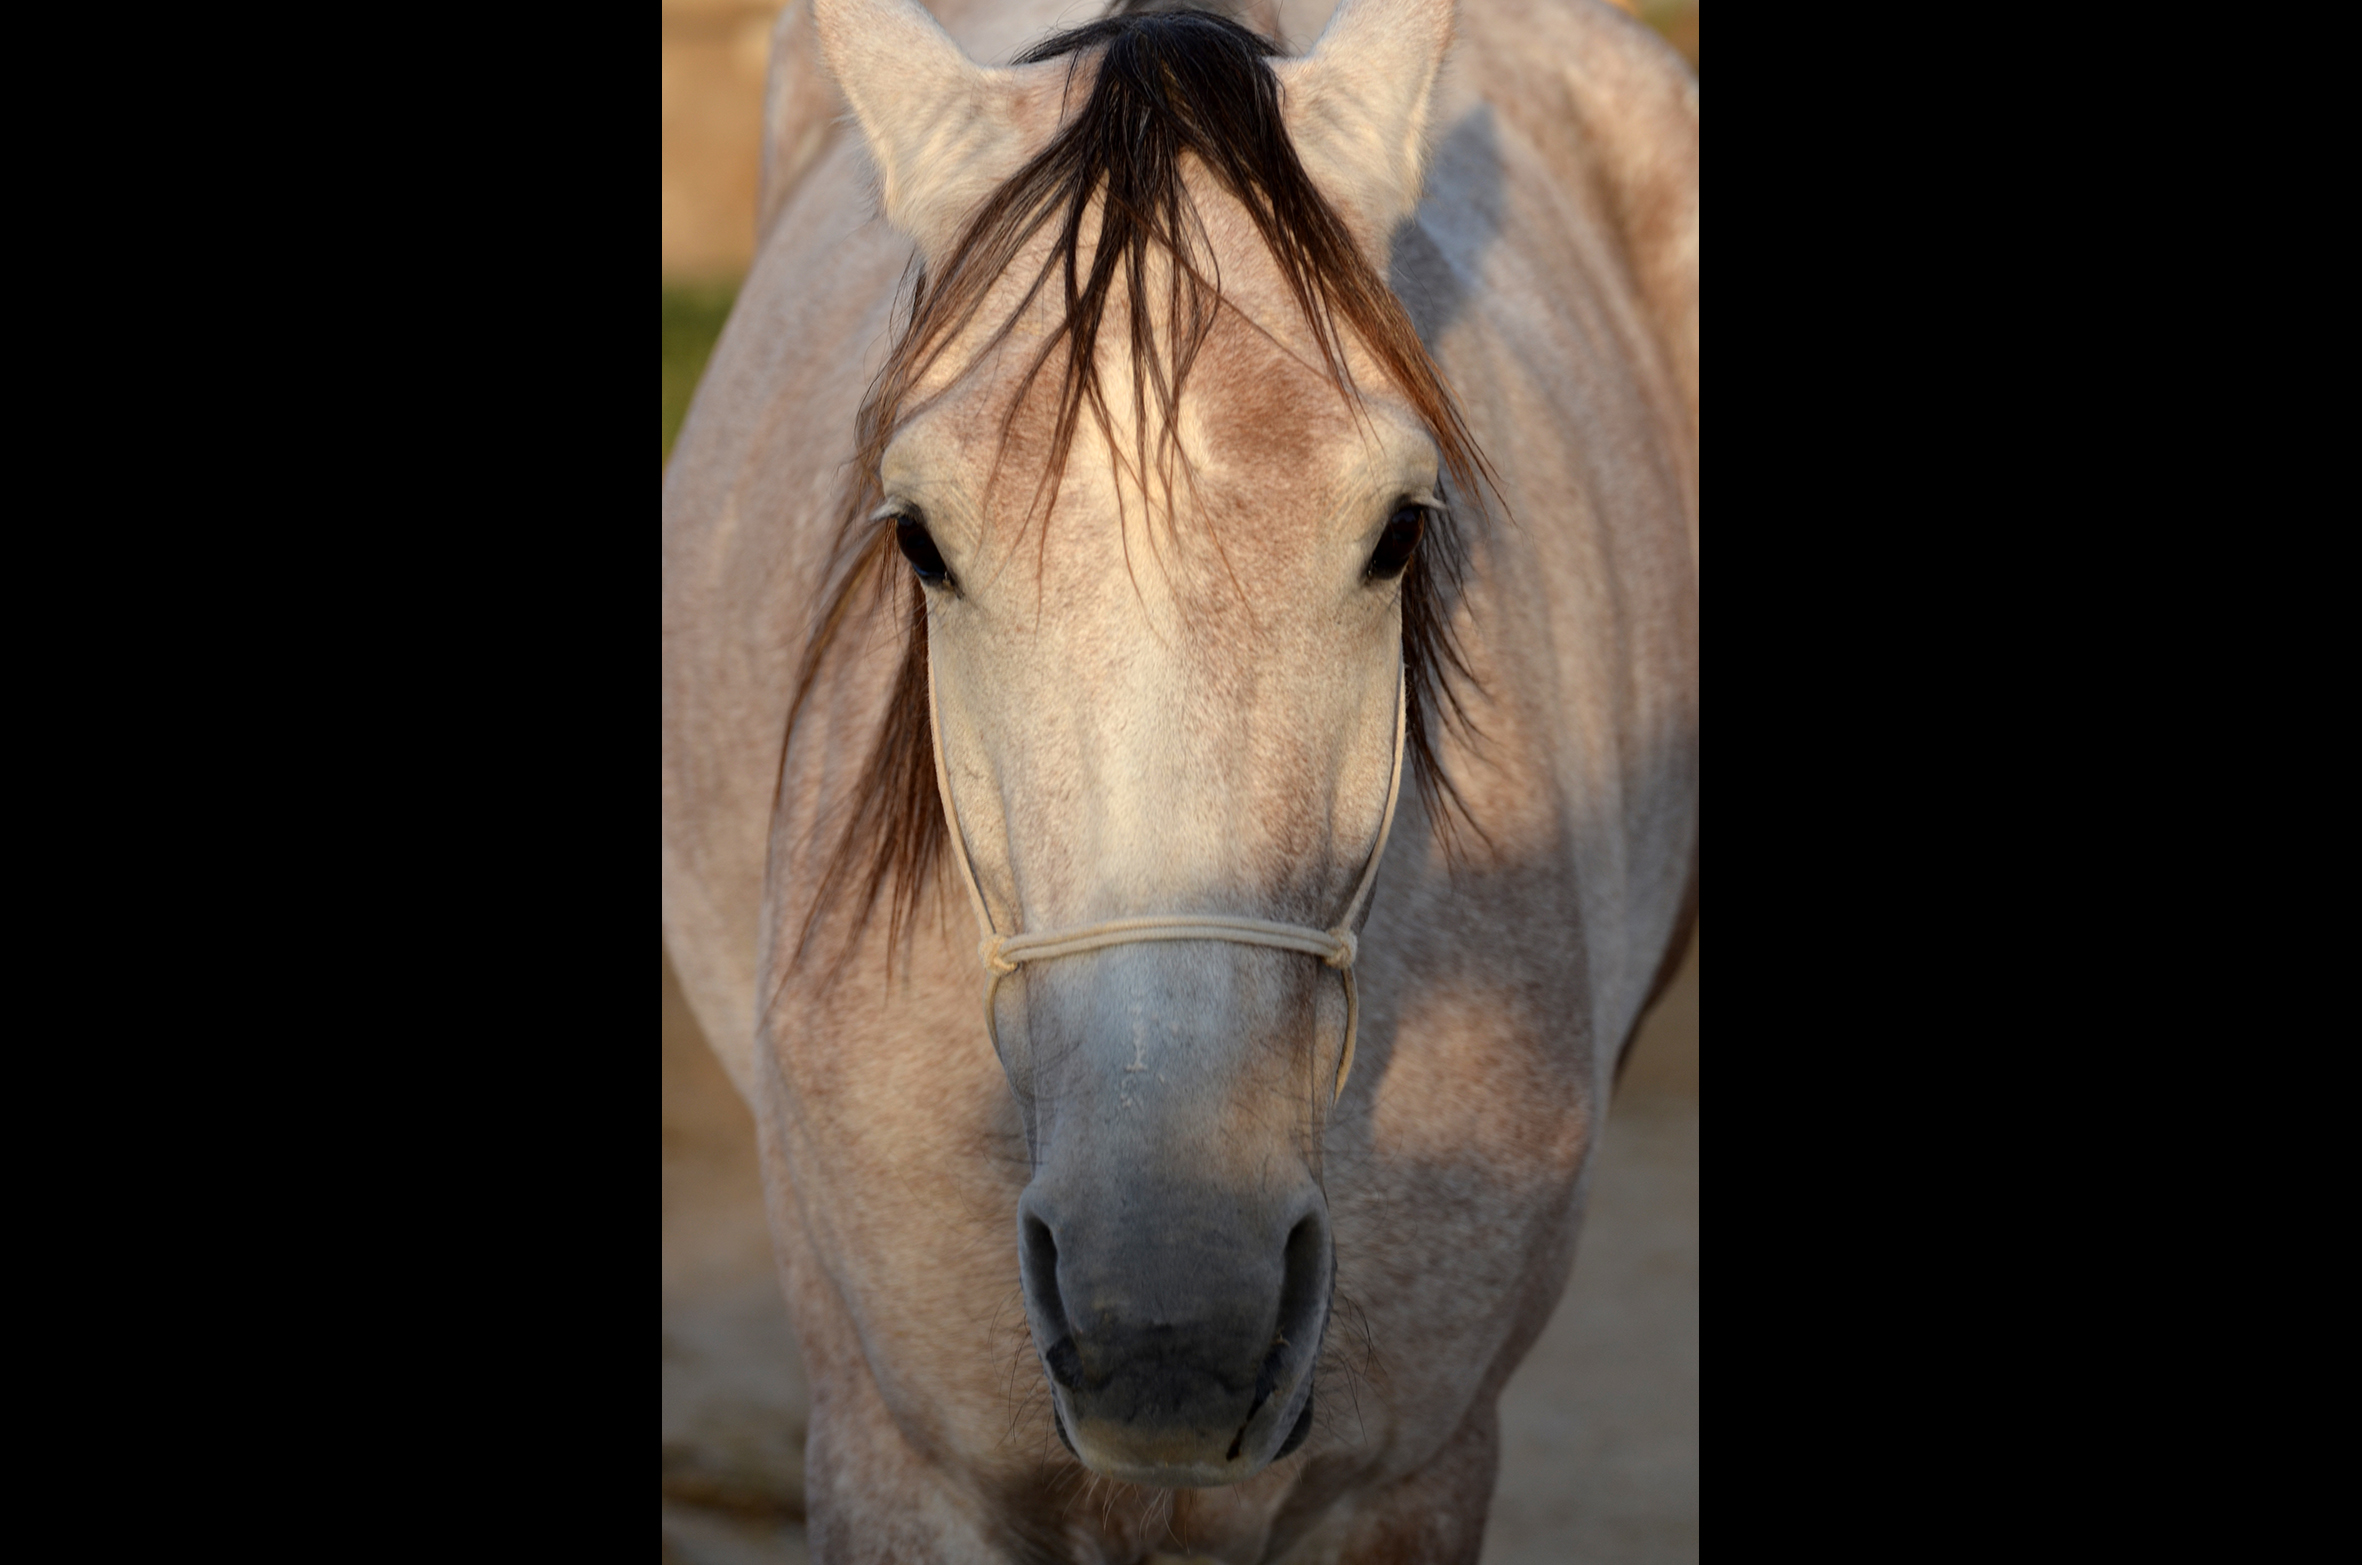 Eymire, arabian horse, mare, 6 years old